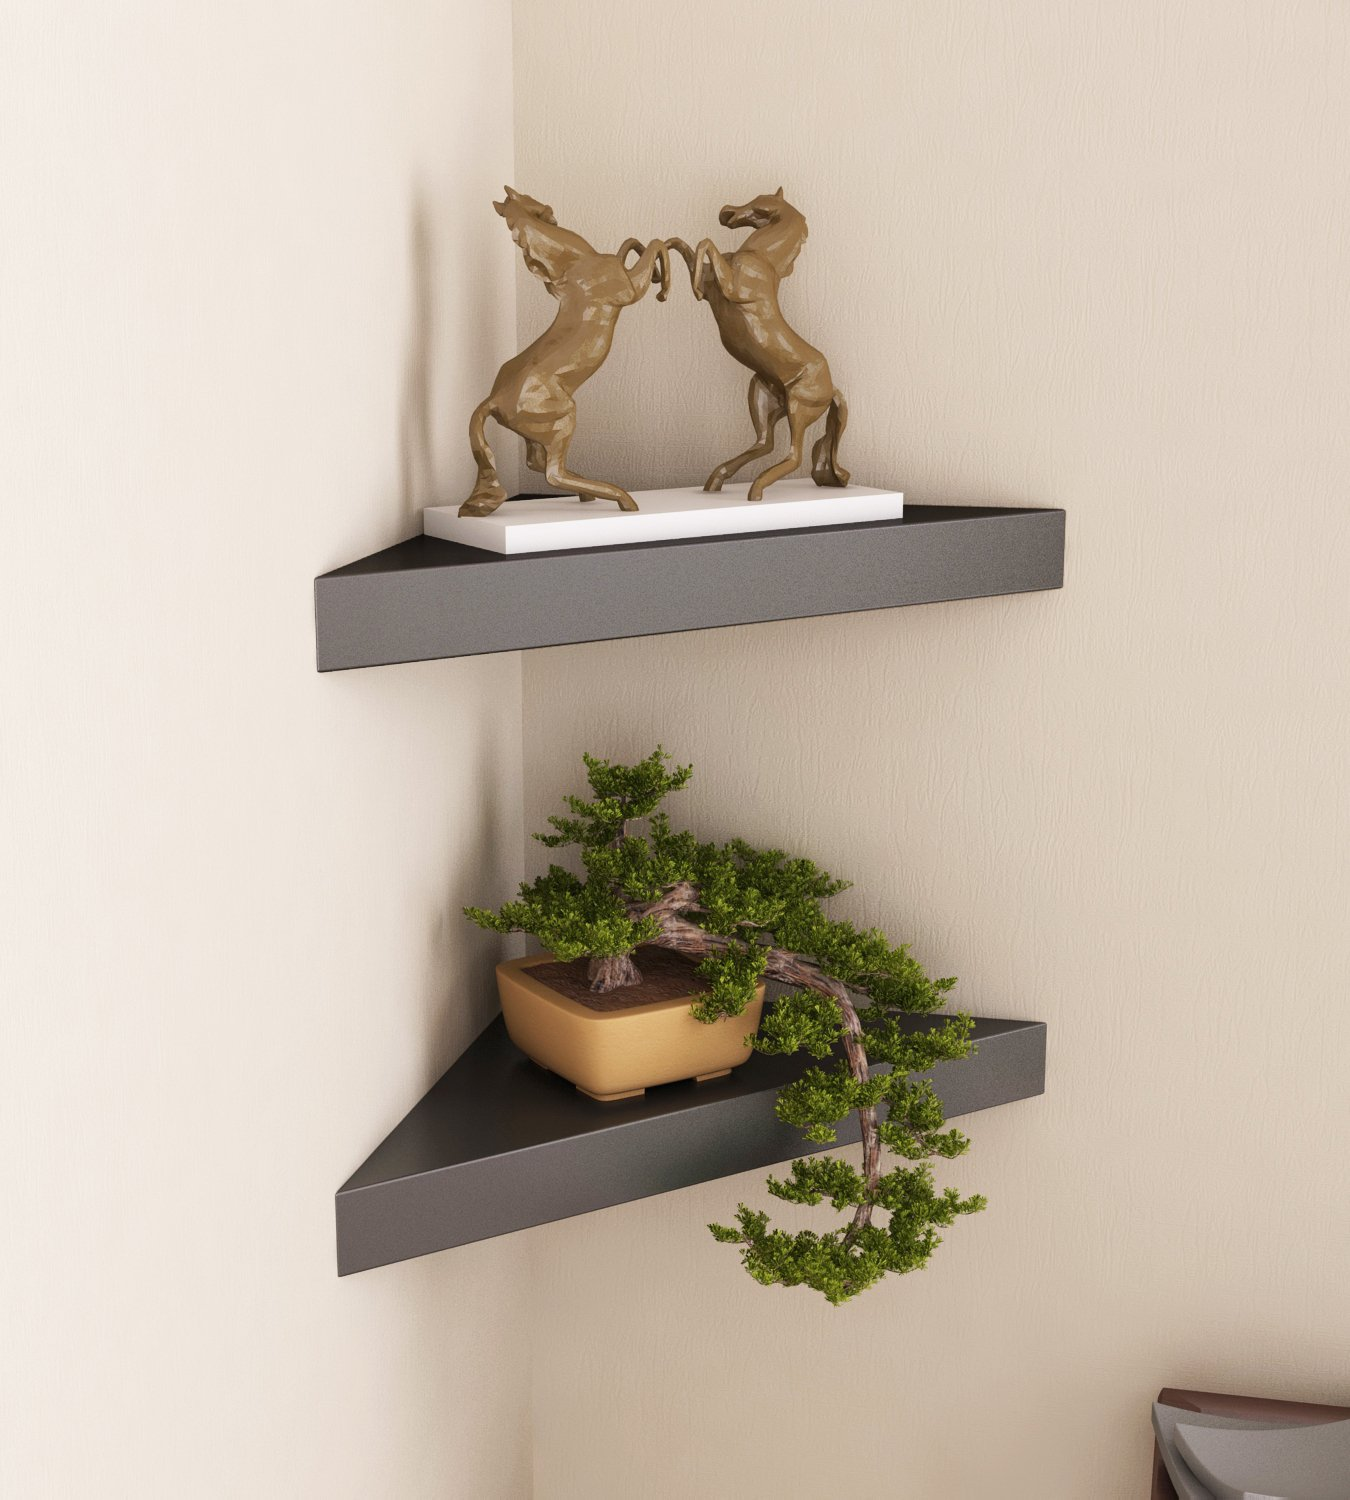 Saket corner shelf design Triangular Shaped Corner Wall Shelves for Living Room Office and Bedroom